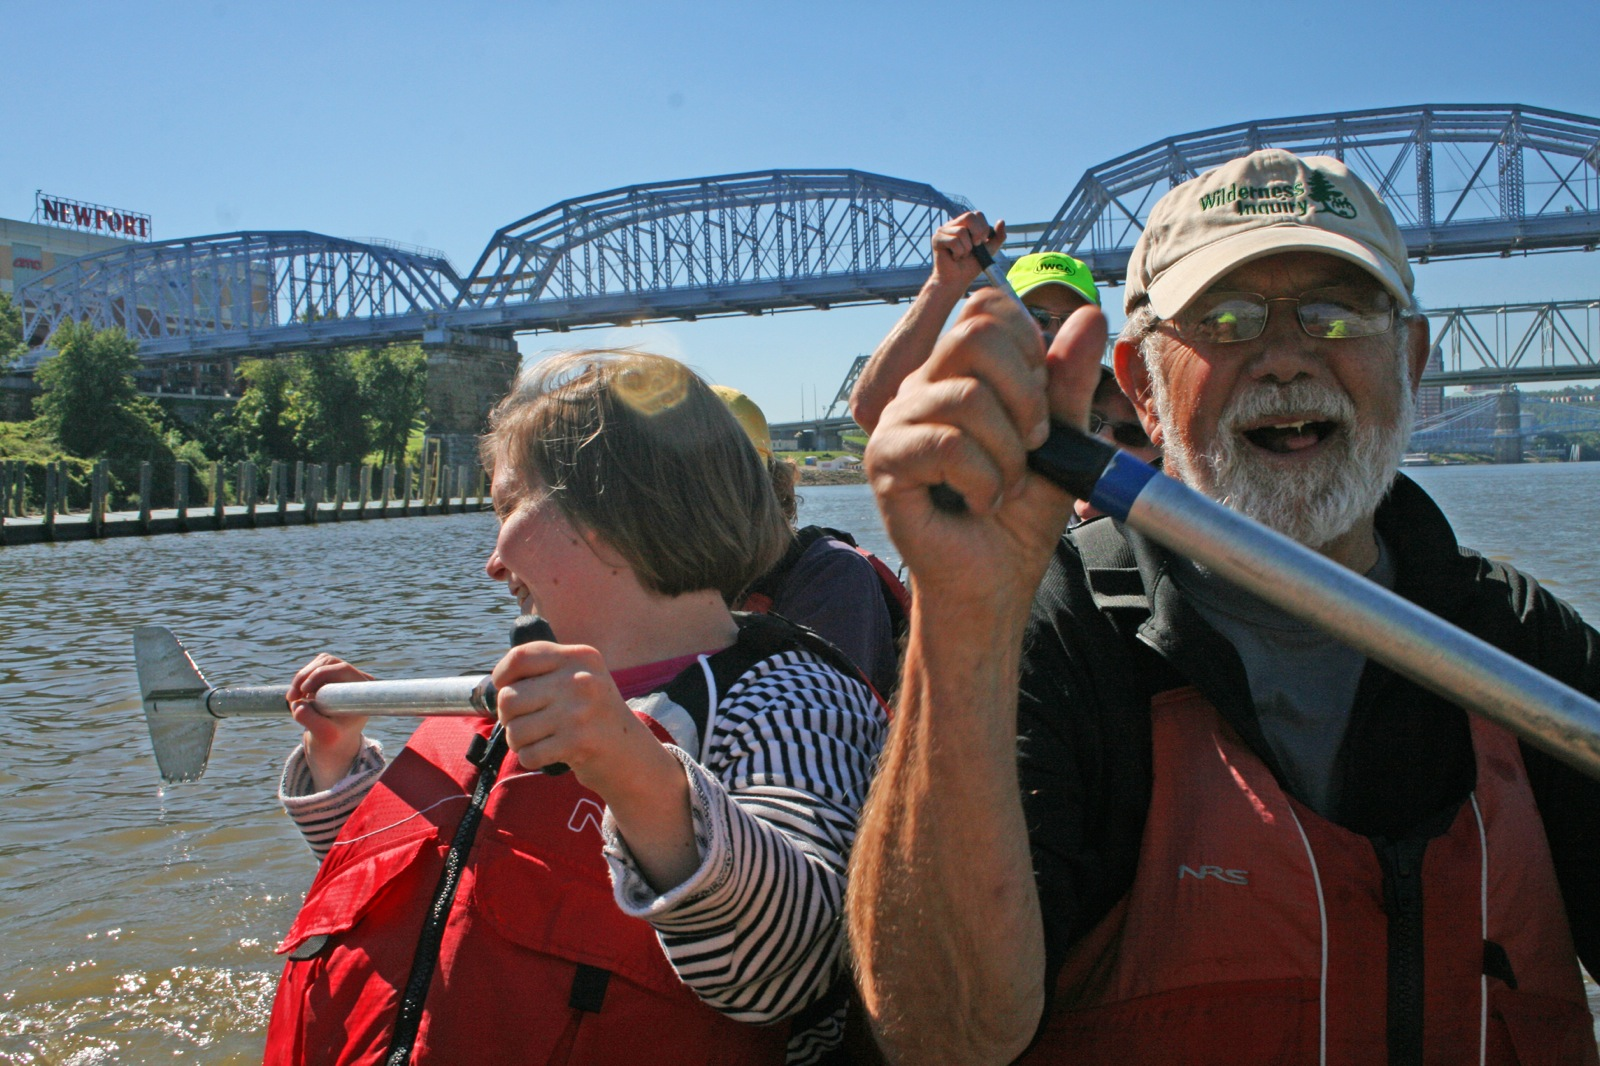 two participants smile as they paddle their canoe down the Ohio river